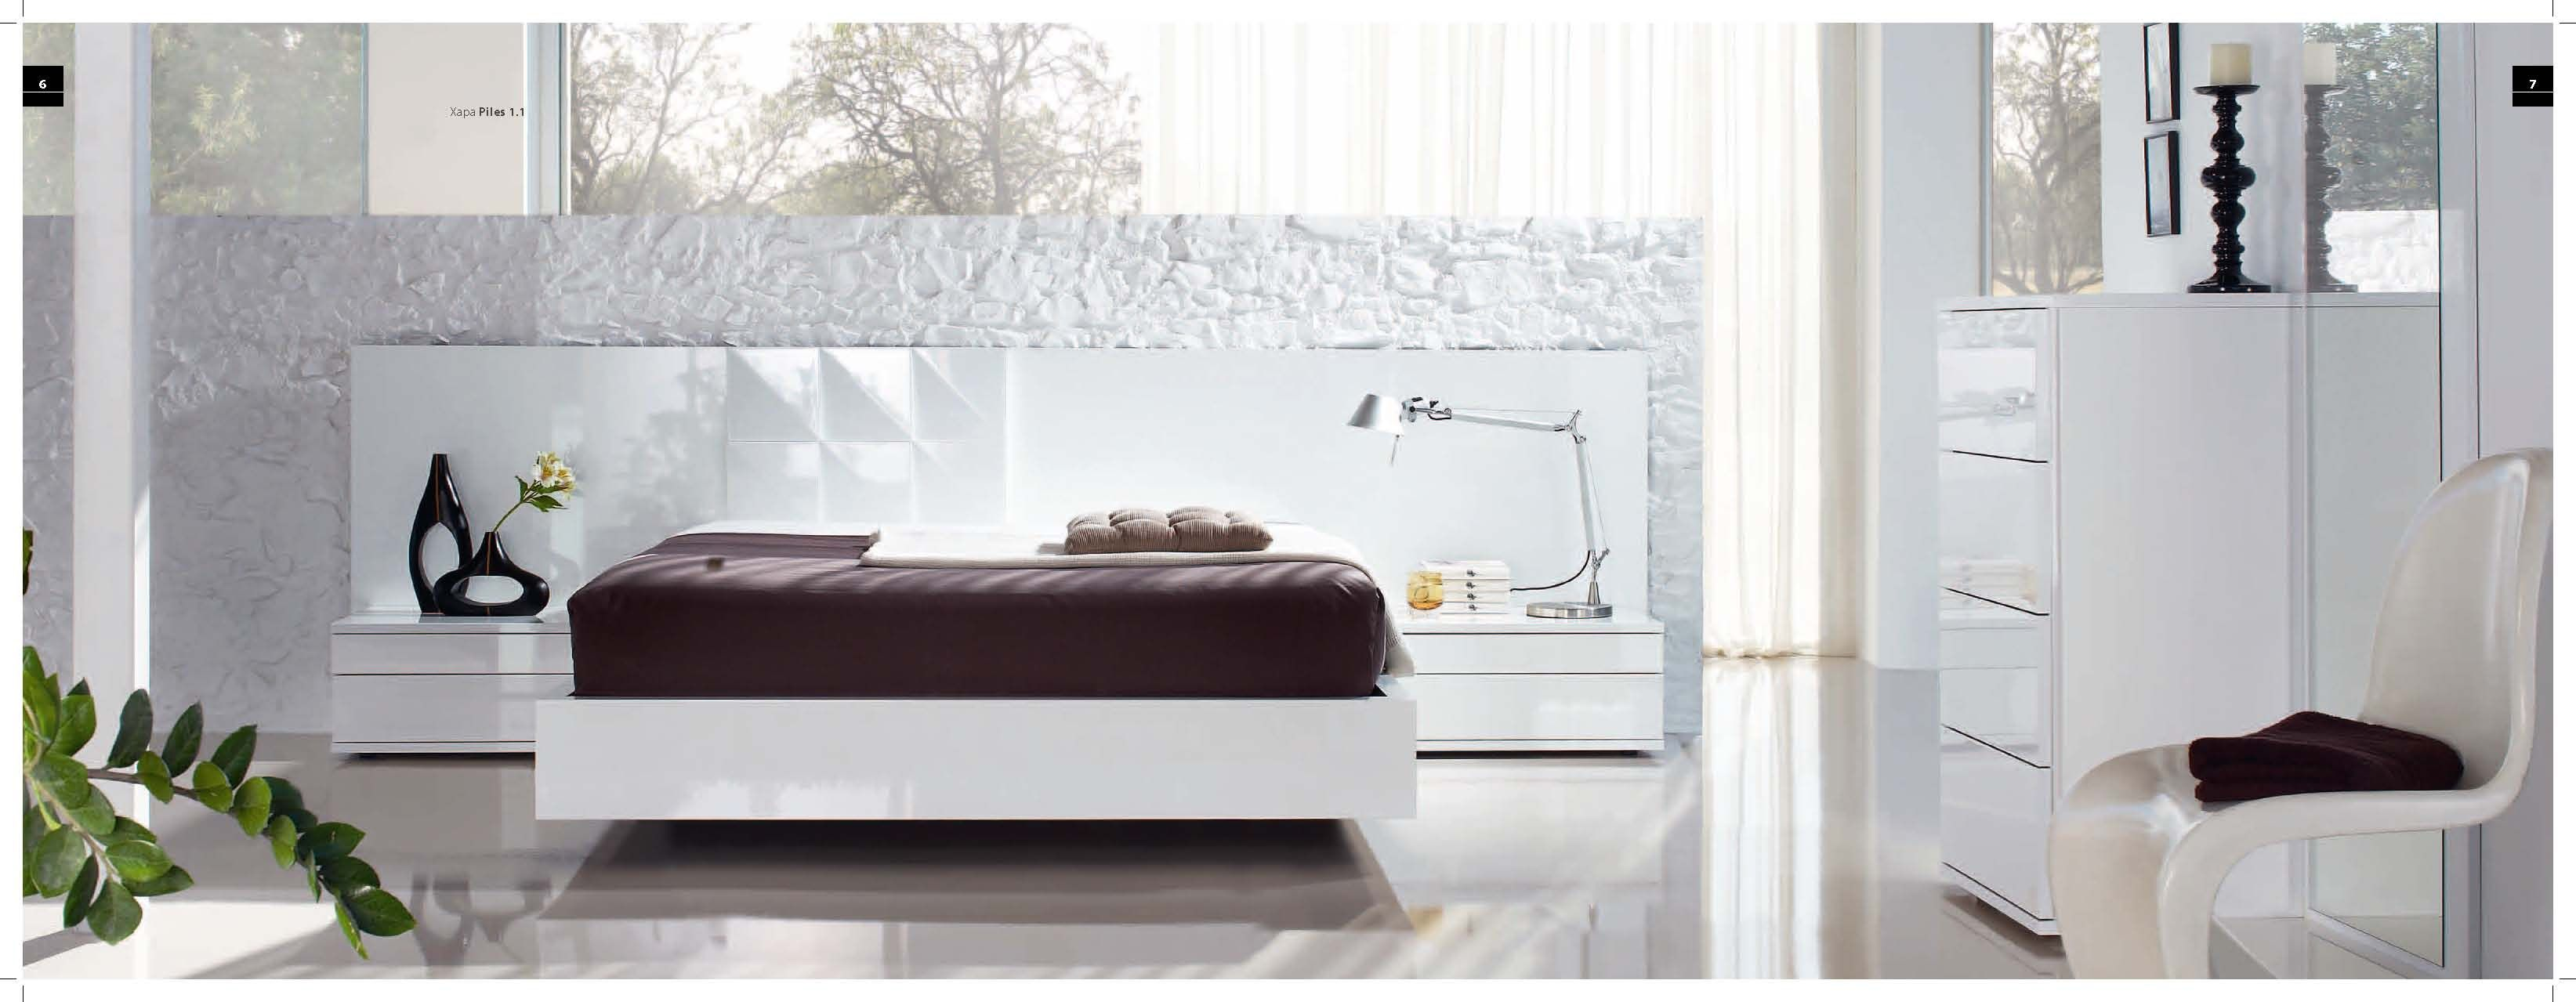 Italy Bedroom Furniture   Поиск в Google